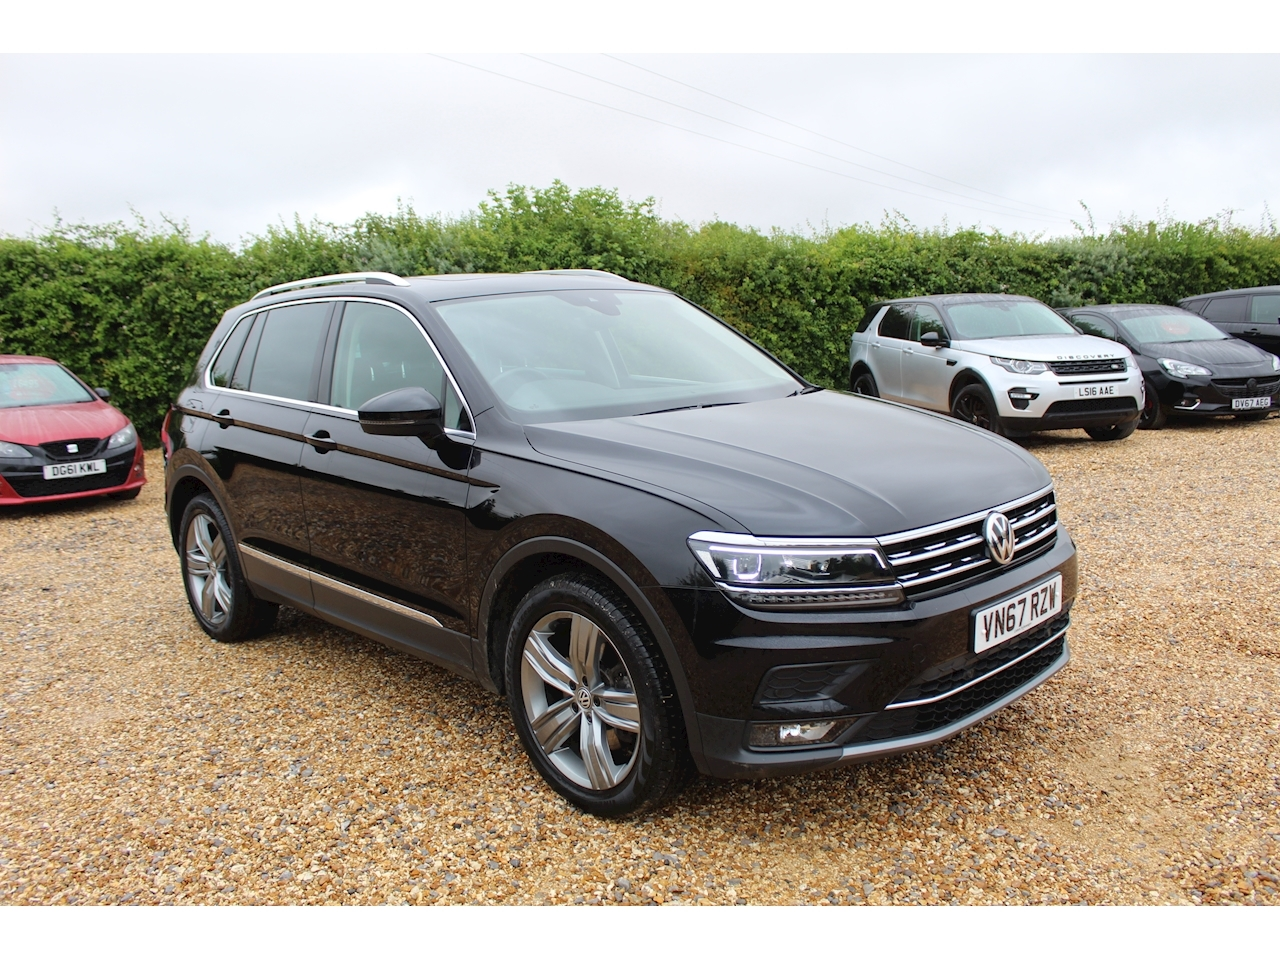 Volkswagen Tiguan Sel Tdi Bluemotion Technology 4Motion Ds Estate 2.0 Semi Auto Diesel